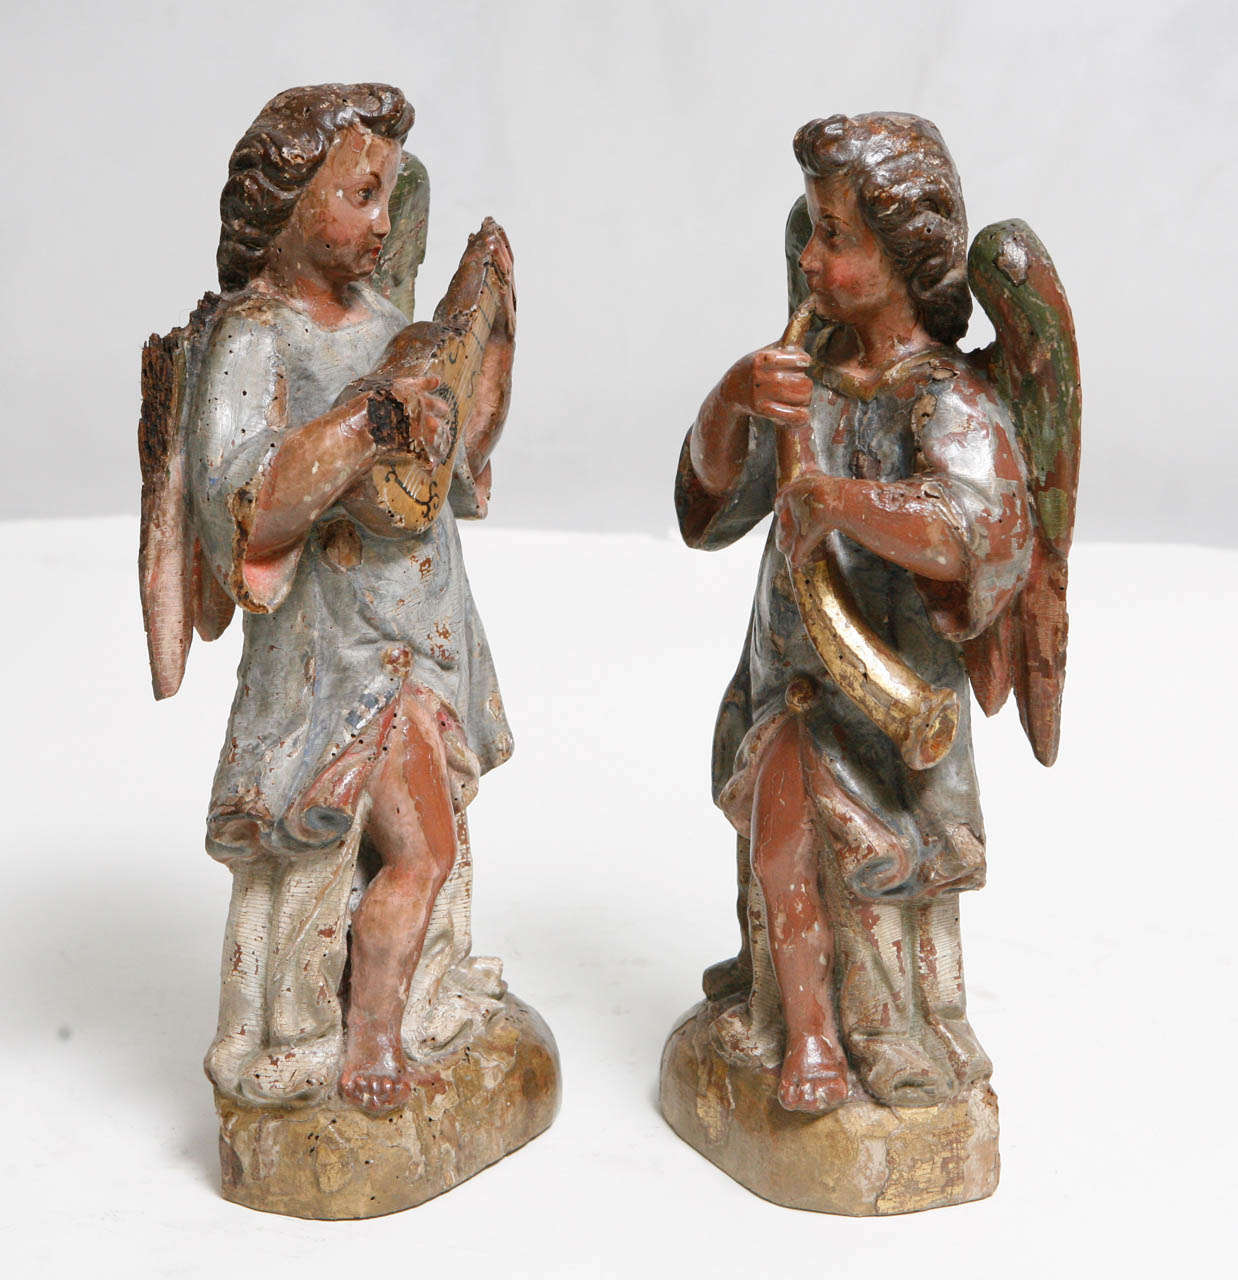 18th c. Pair of Italian Polychromed Winged Angels playing Instruments. The base measures 5.5 inches